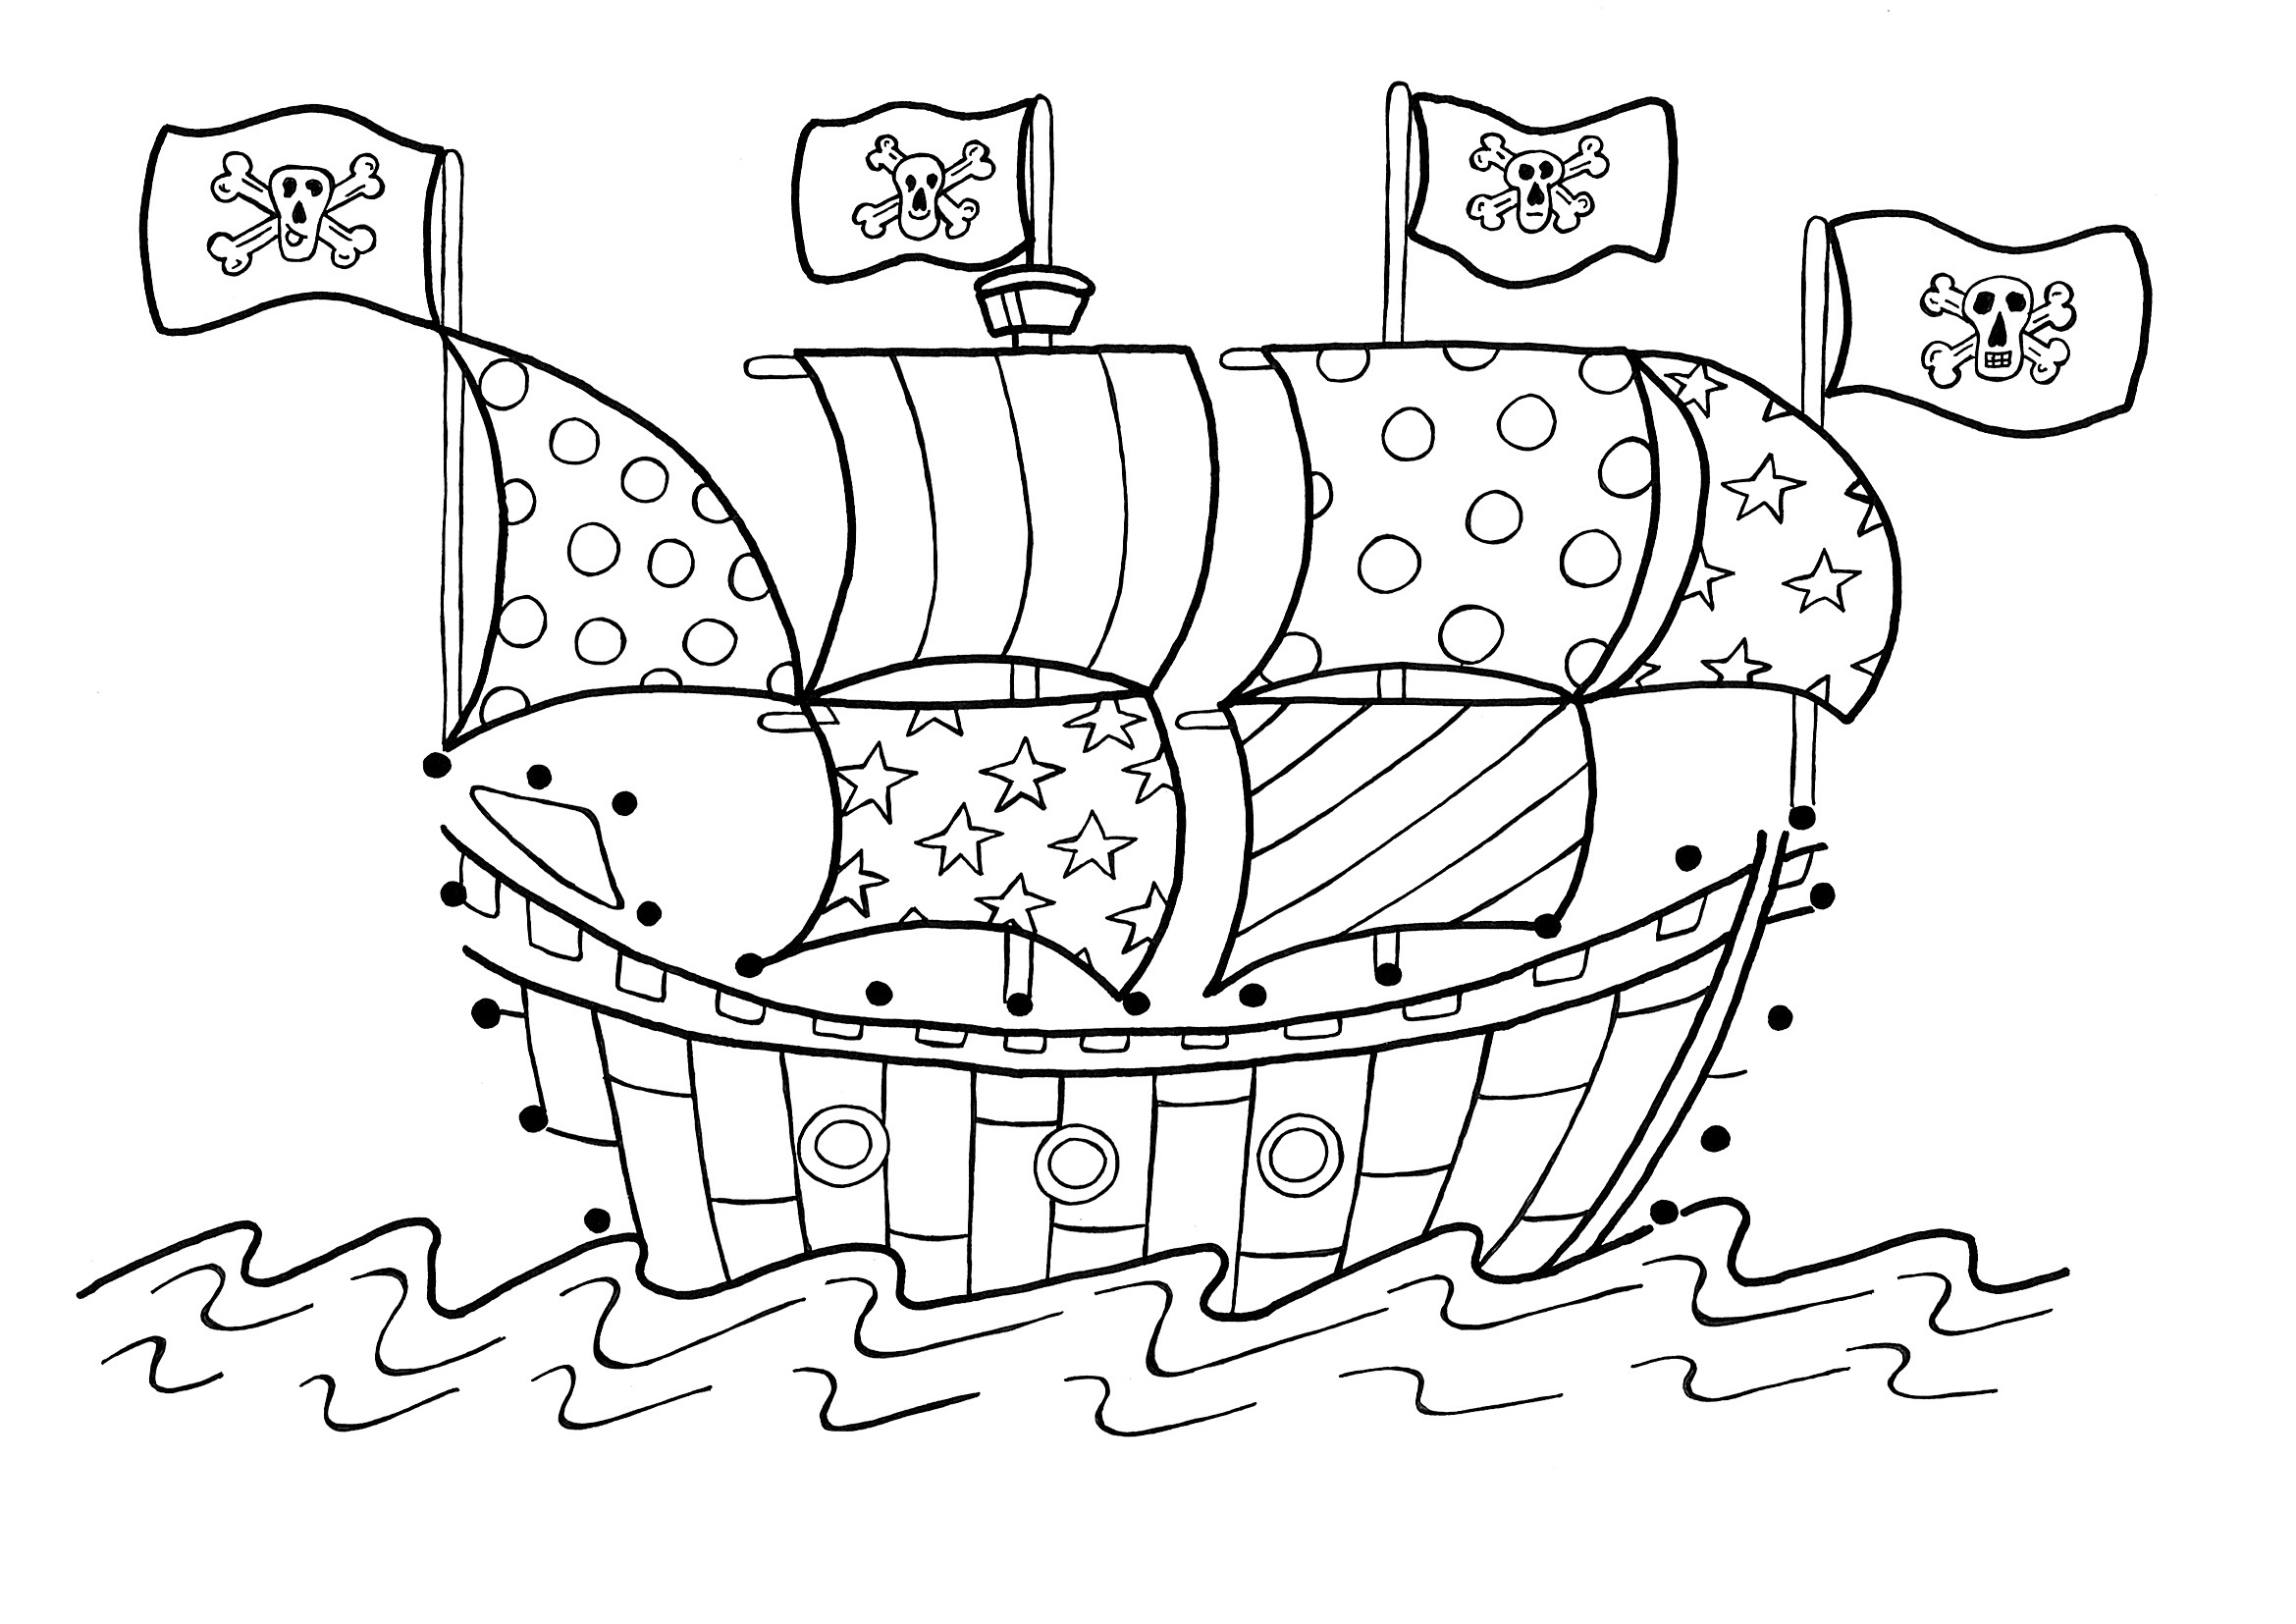 pirate images to color lego pirate coloring pages at getcoloringscom free to pirate images color